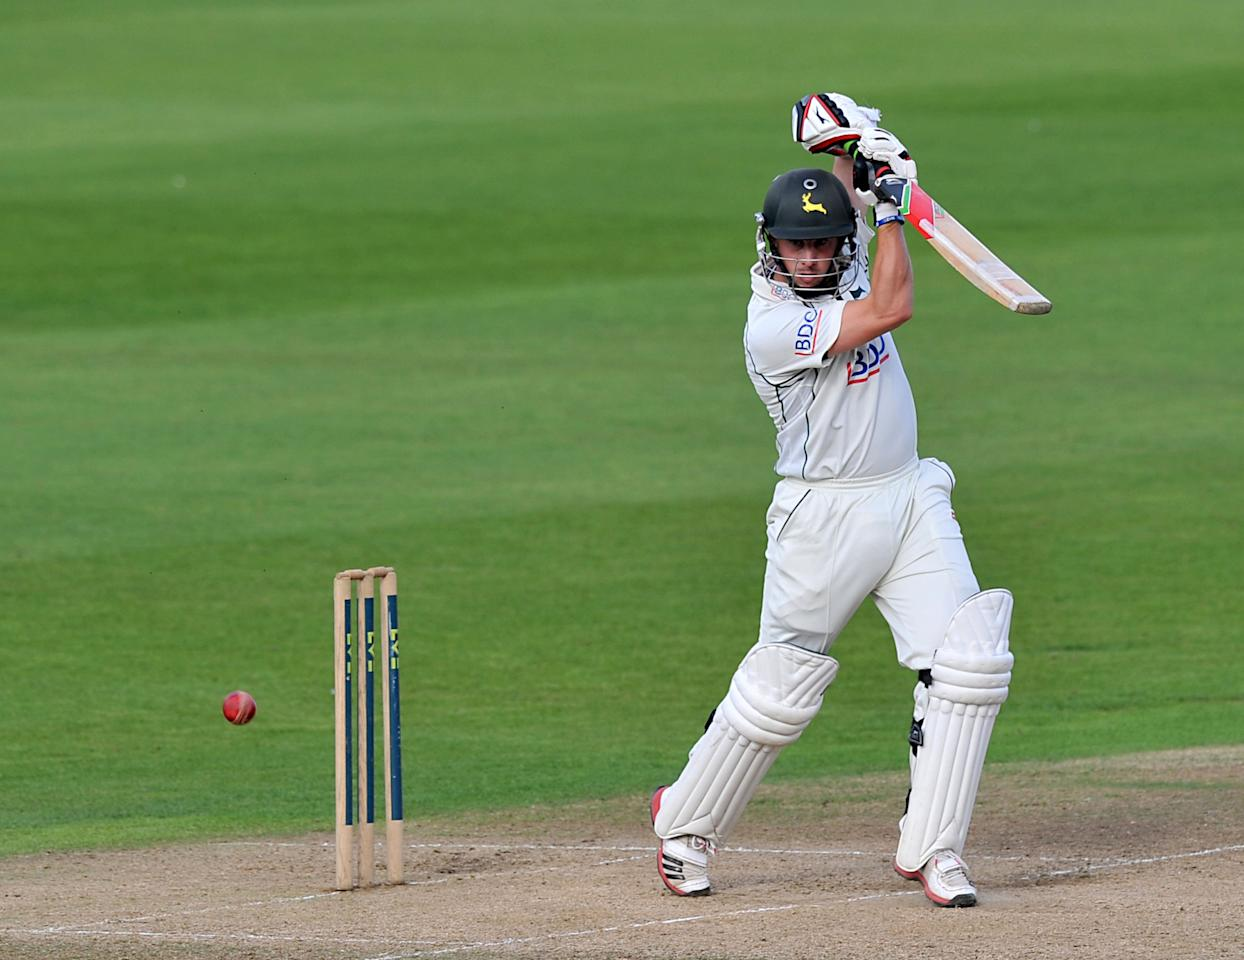 Norringhamshire's Steven Mullaney bats during the LV= County Championship, Division One match at Trent Bridge, Nottingham.